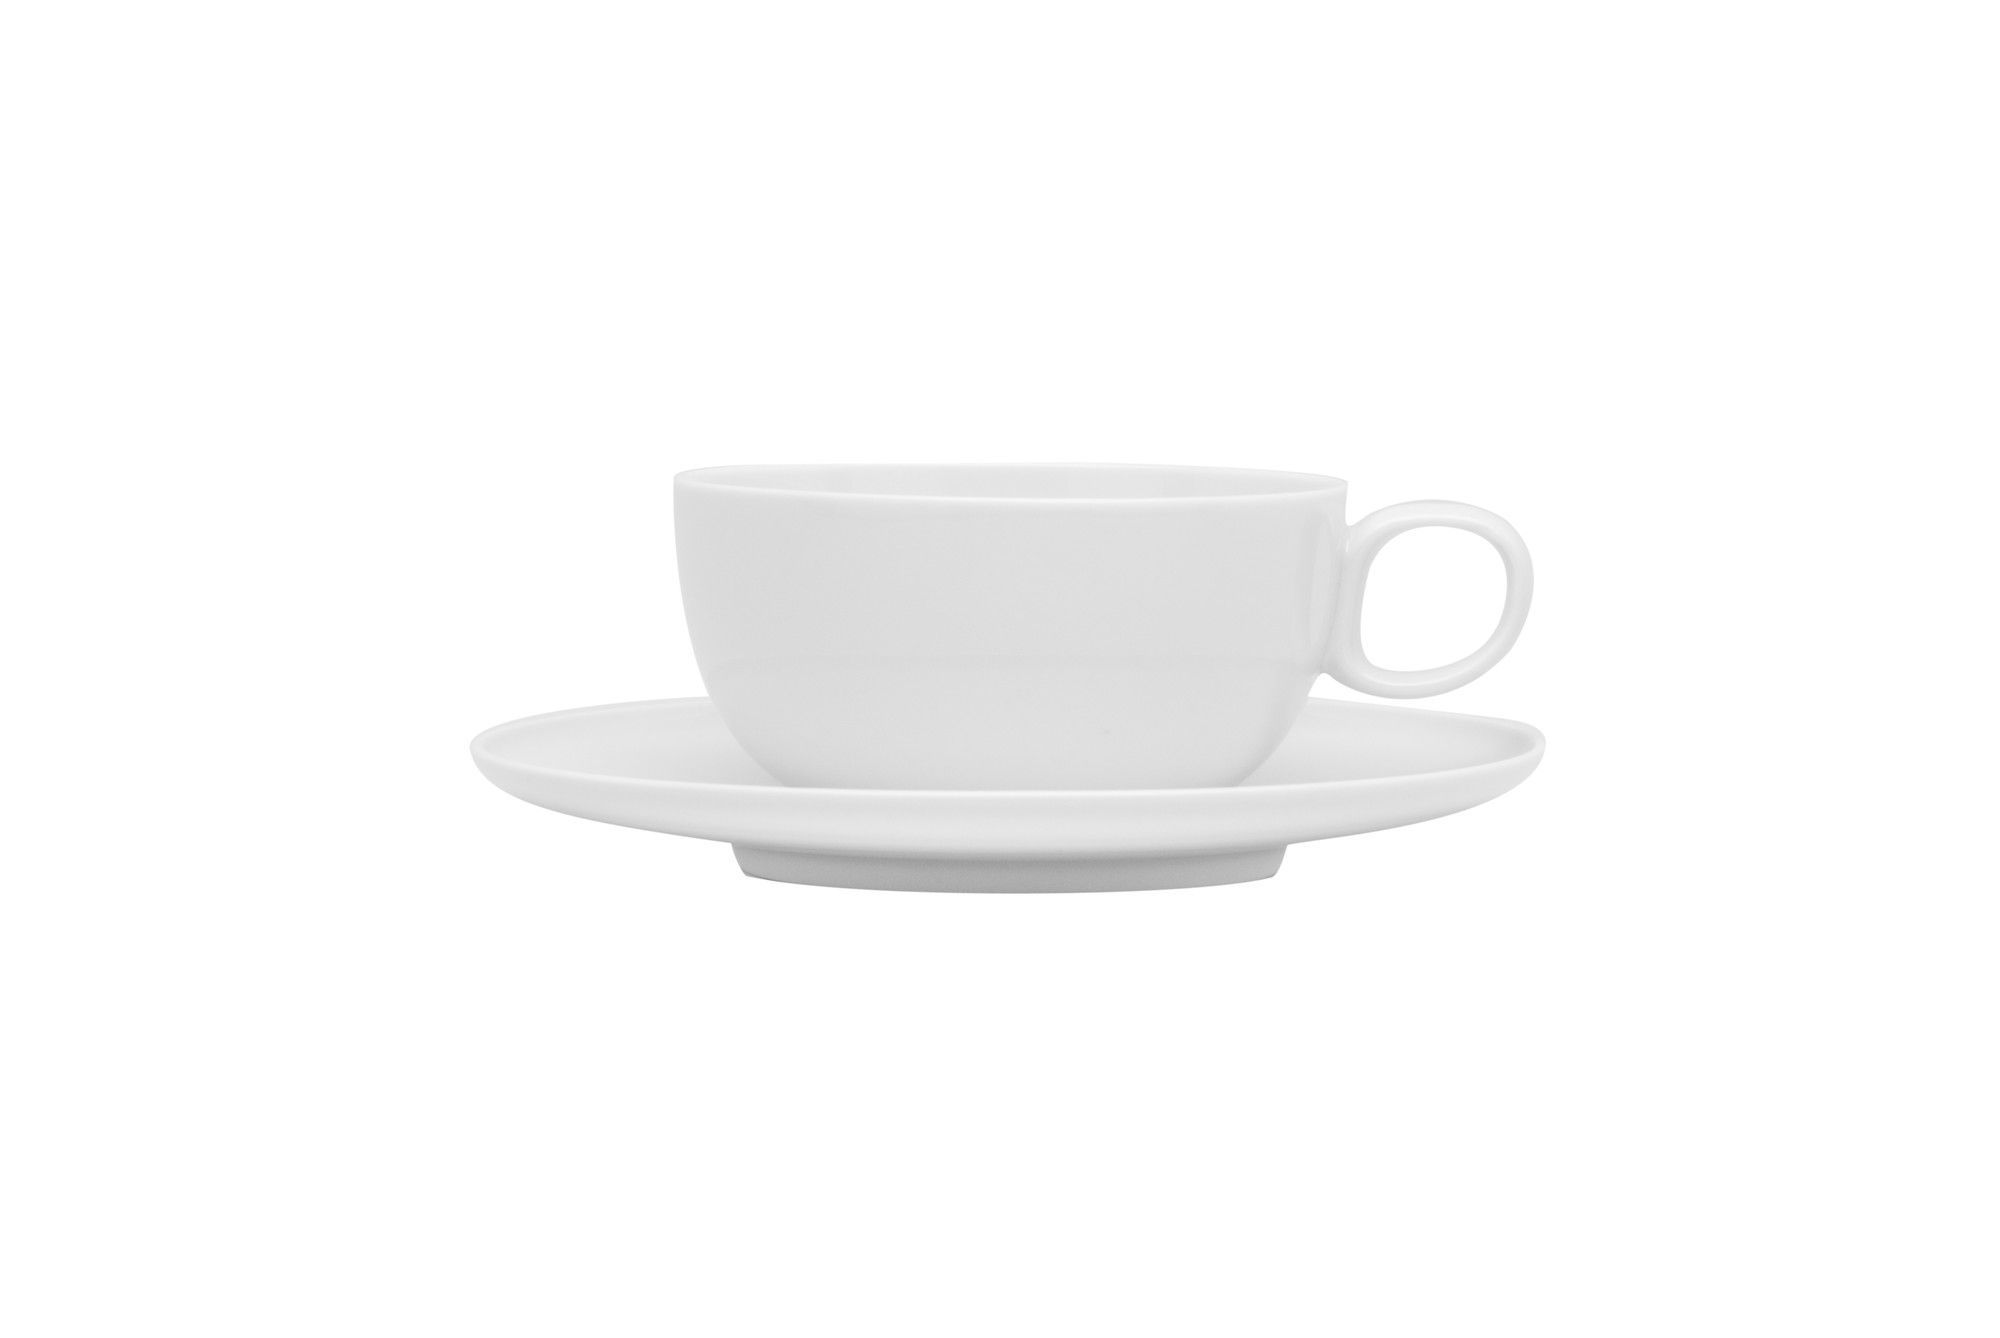 Everytime 3 oz. Espresso Cup and Saucer